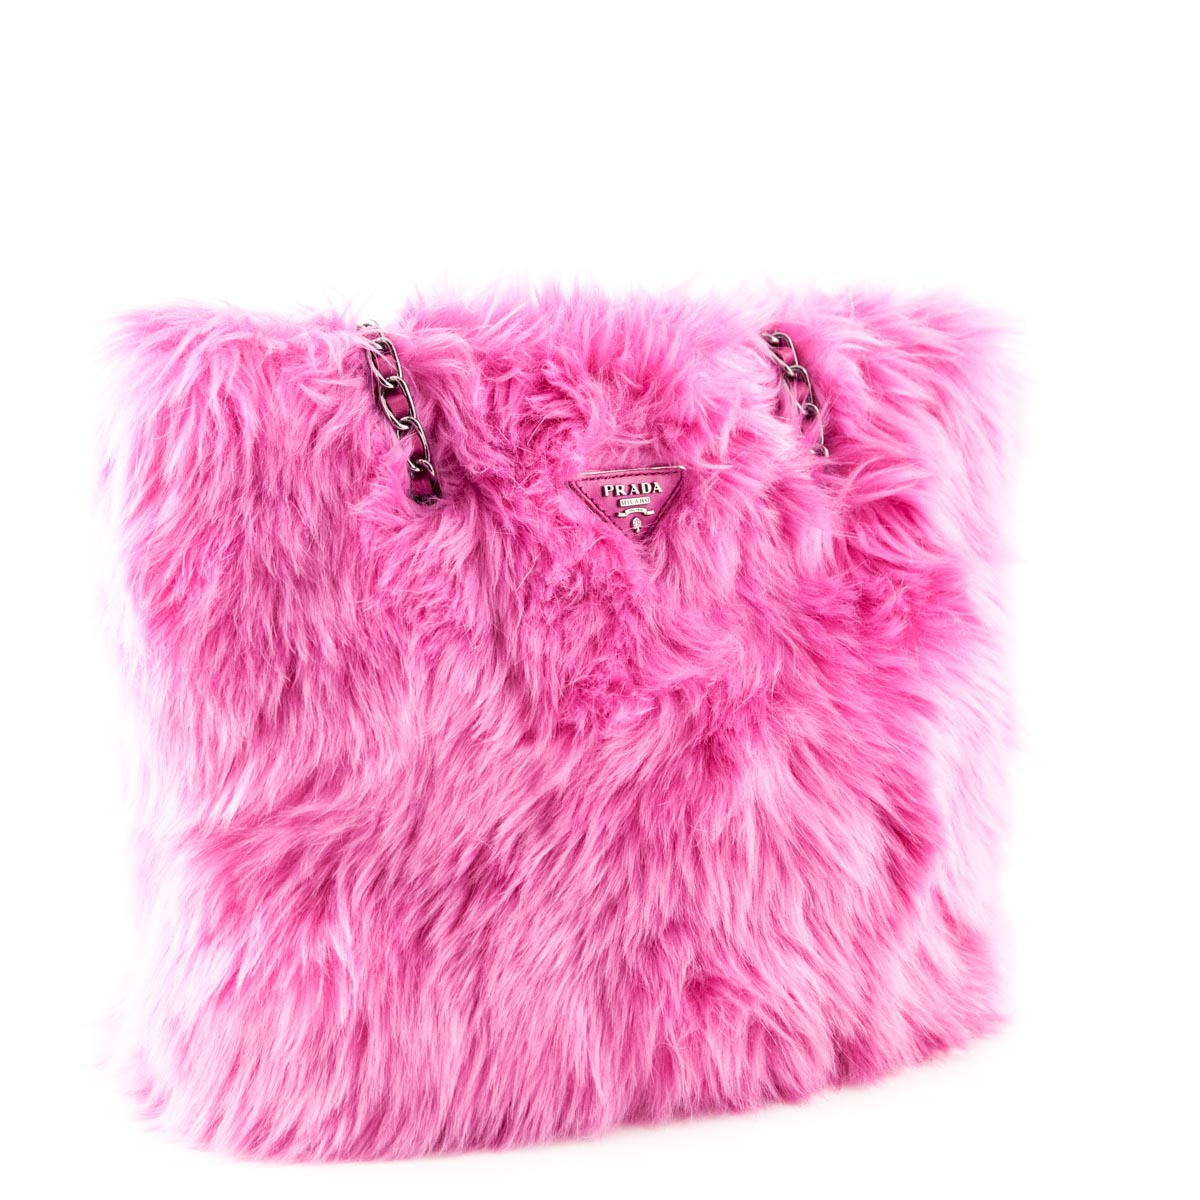 ... Prada Begonia Faux Fur Eco Pelliccia Chain Tote - LOVE that BAG -  Preowned Authentic Designer ... 921e0817031b8